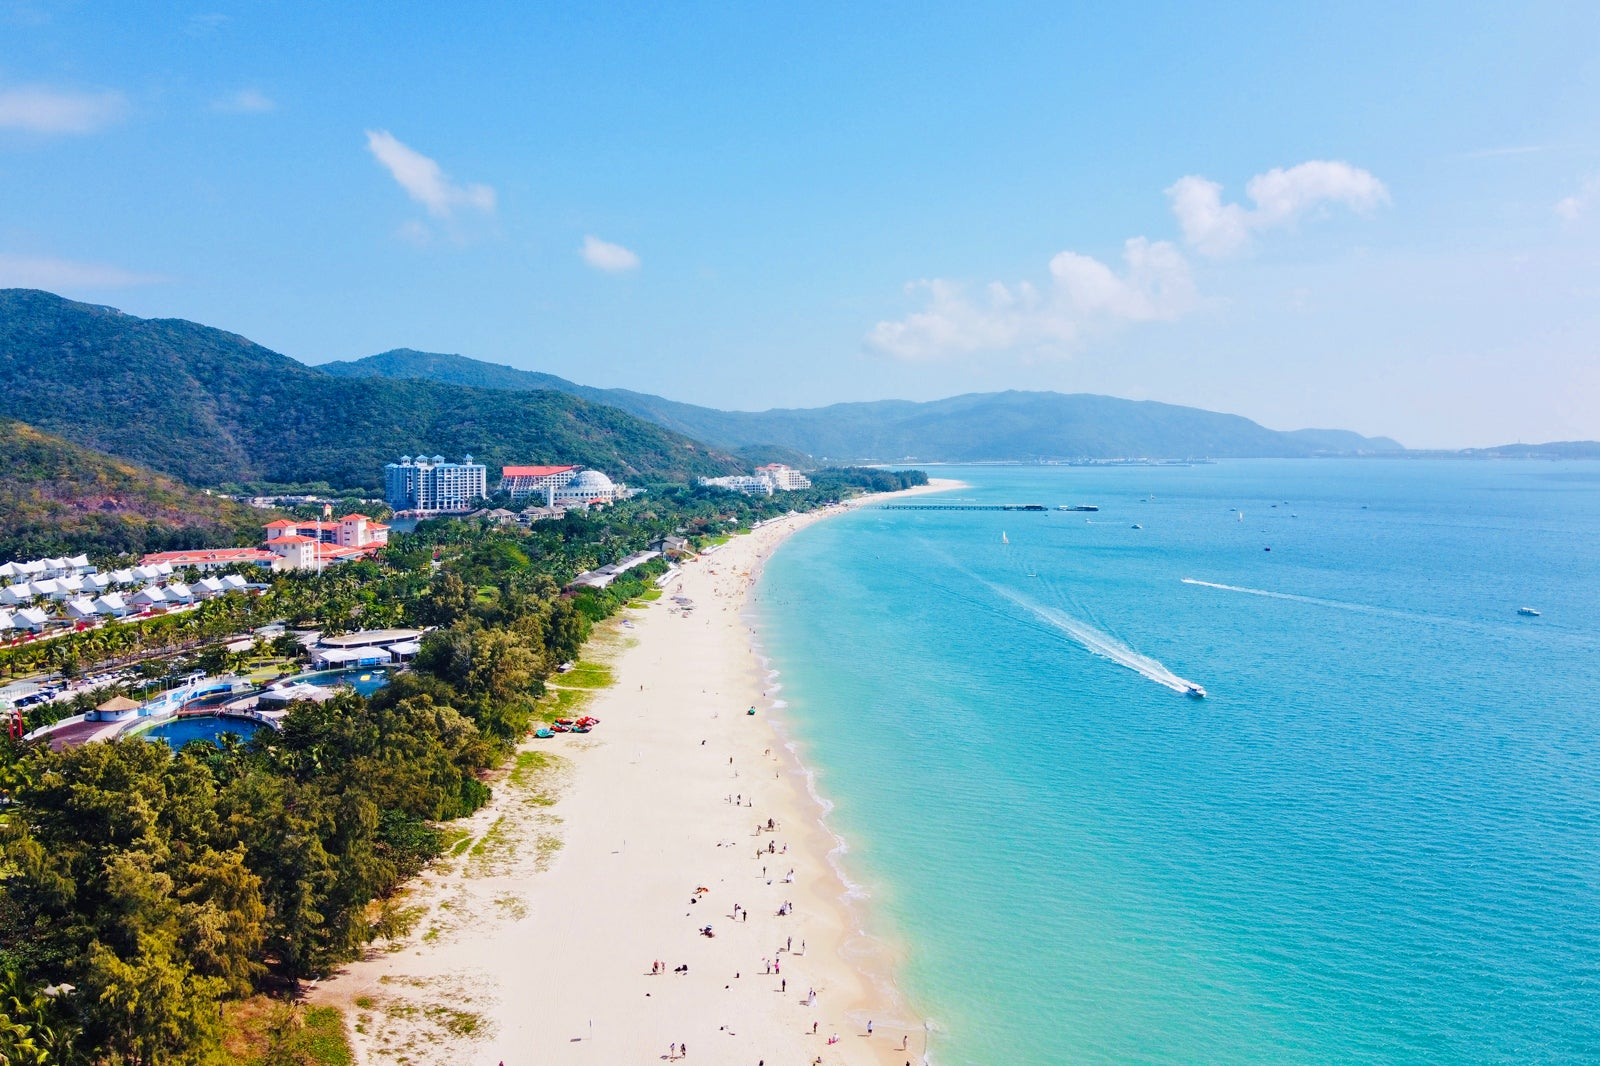 10 Best Things to Do in Sanya - What is Sanya Most Famous For?